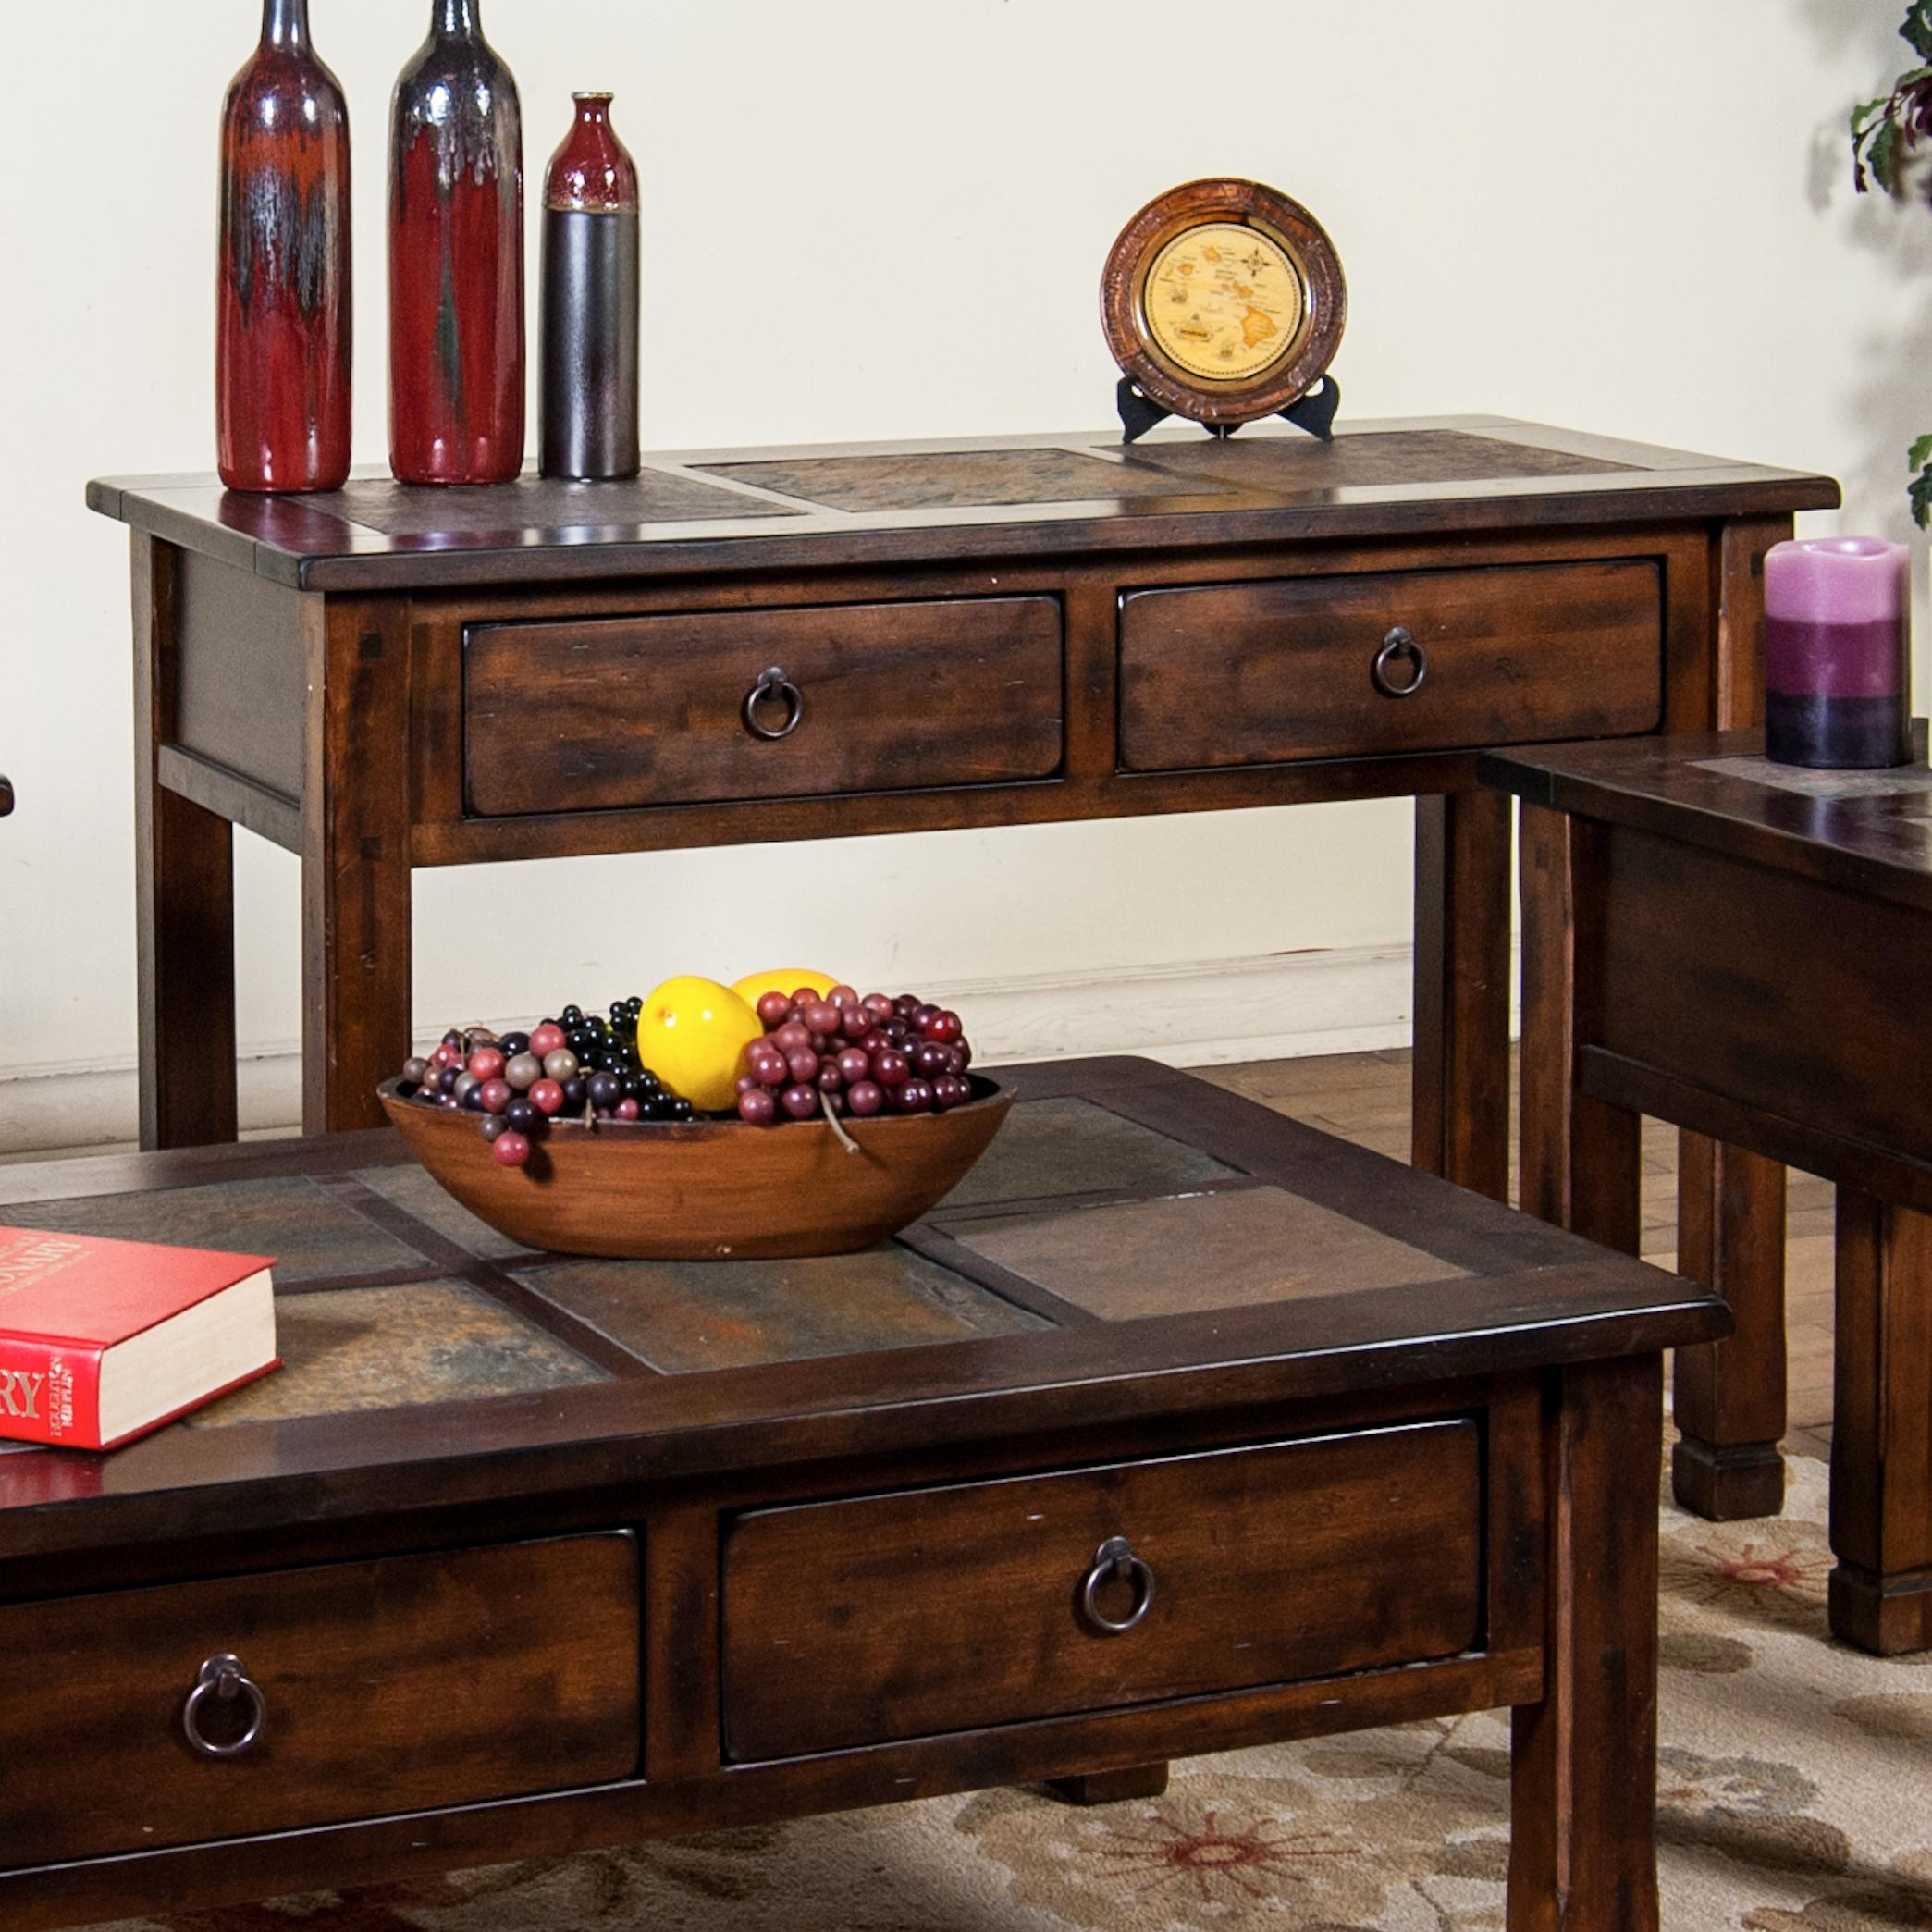 Sofaconsole table w slate top by sunny designs wolf and sofaconsole table w slate top geotapseo Gallery